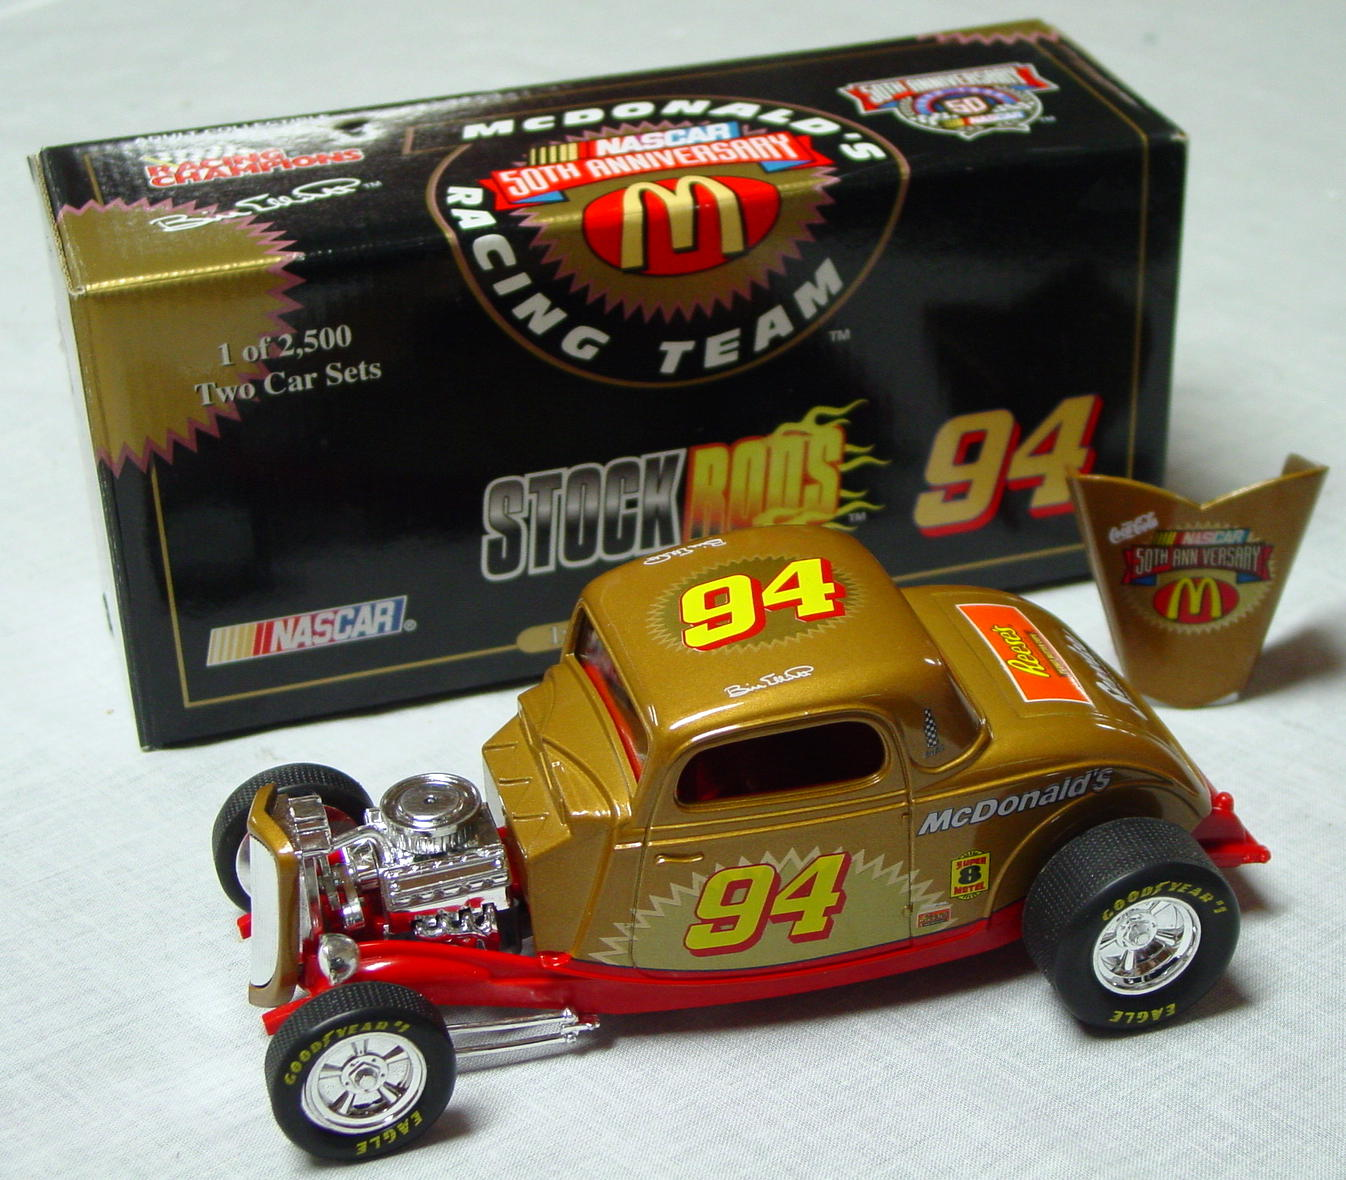 1_24 Scale - RC STOCK ROD Elliot Ford Hiboy Gold chrome